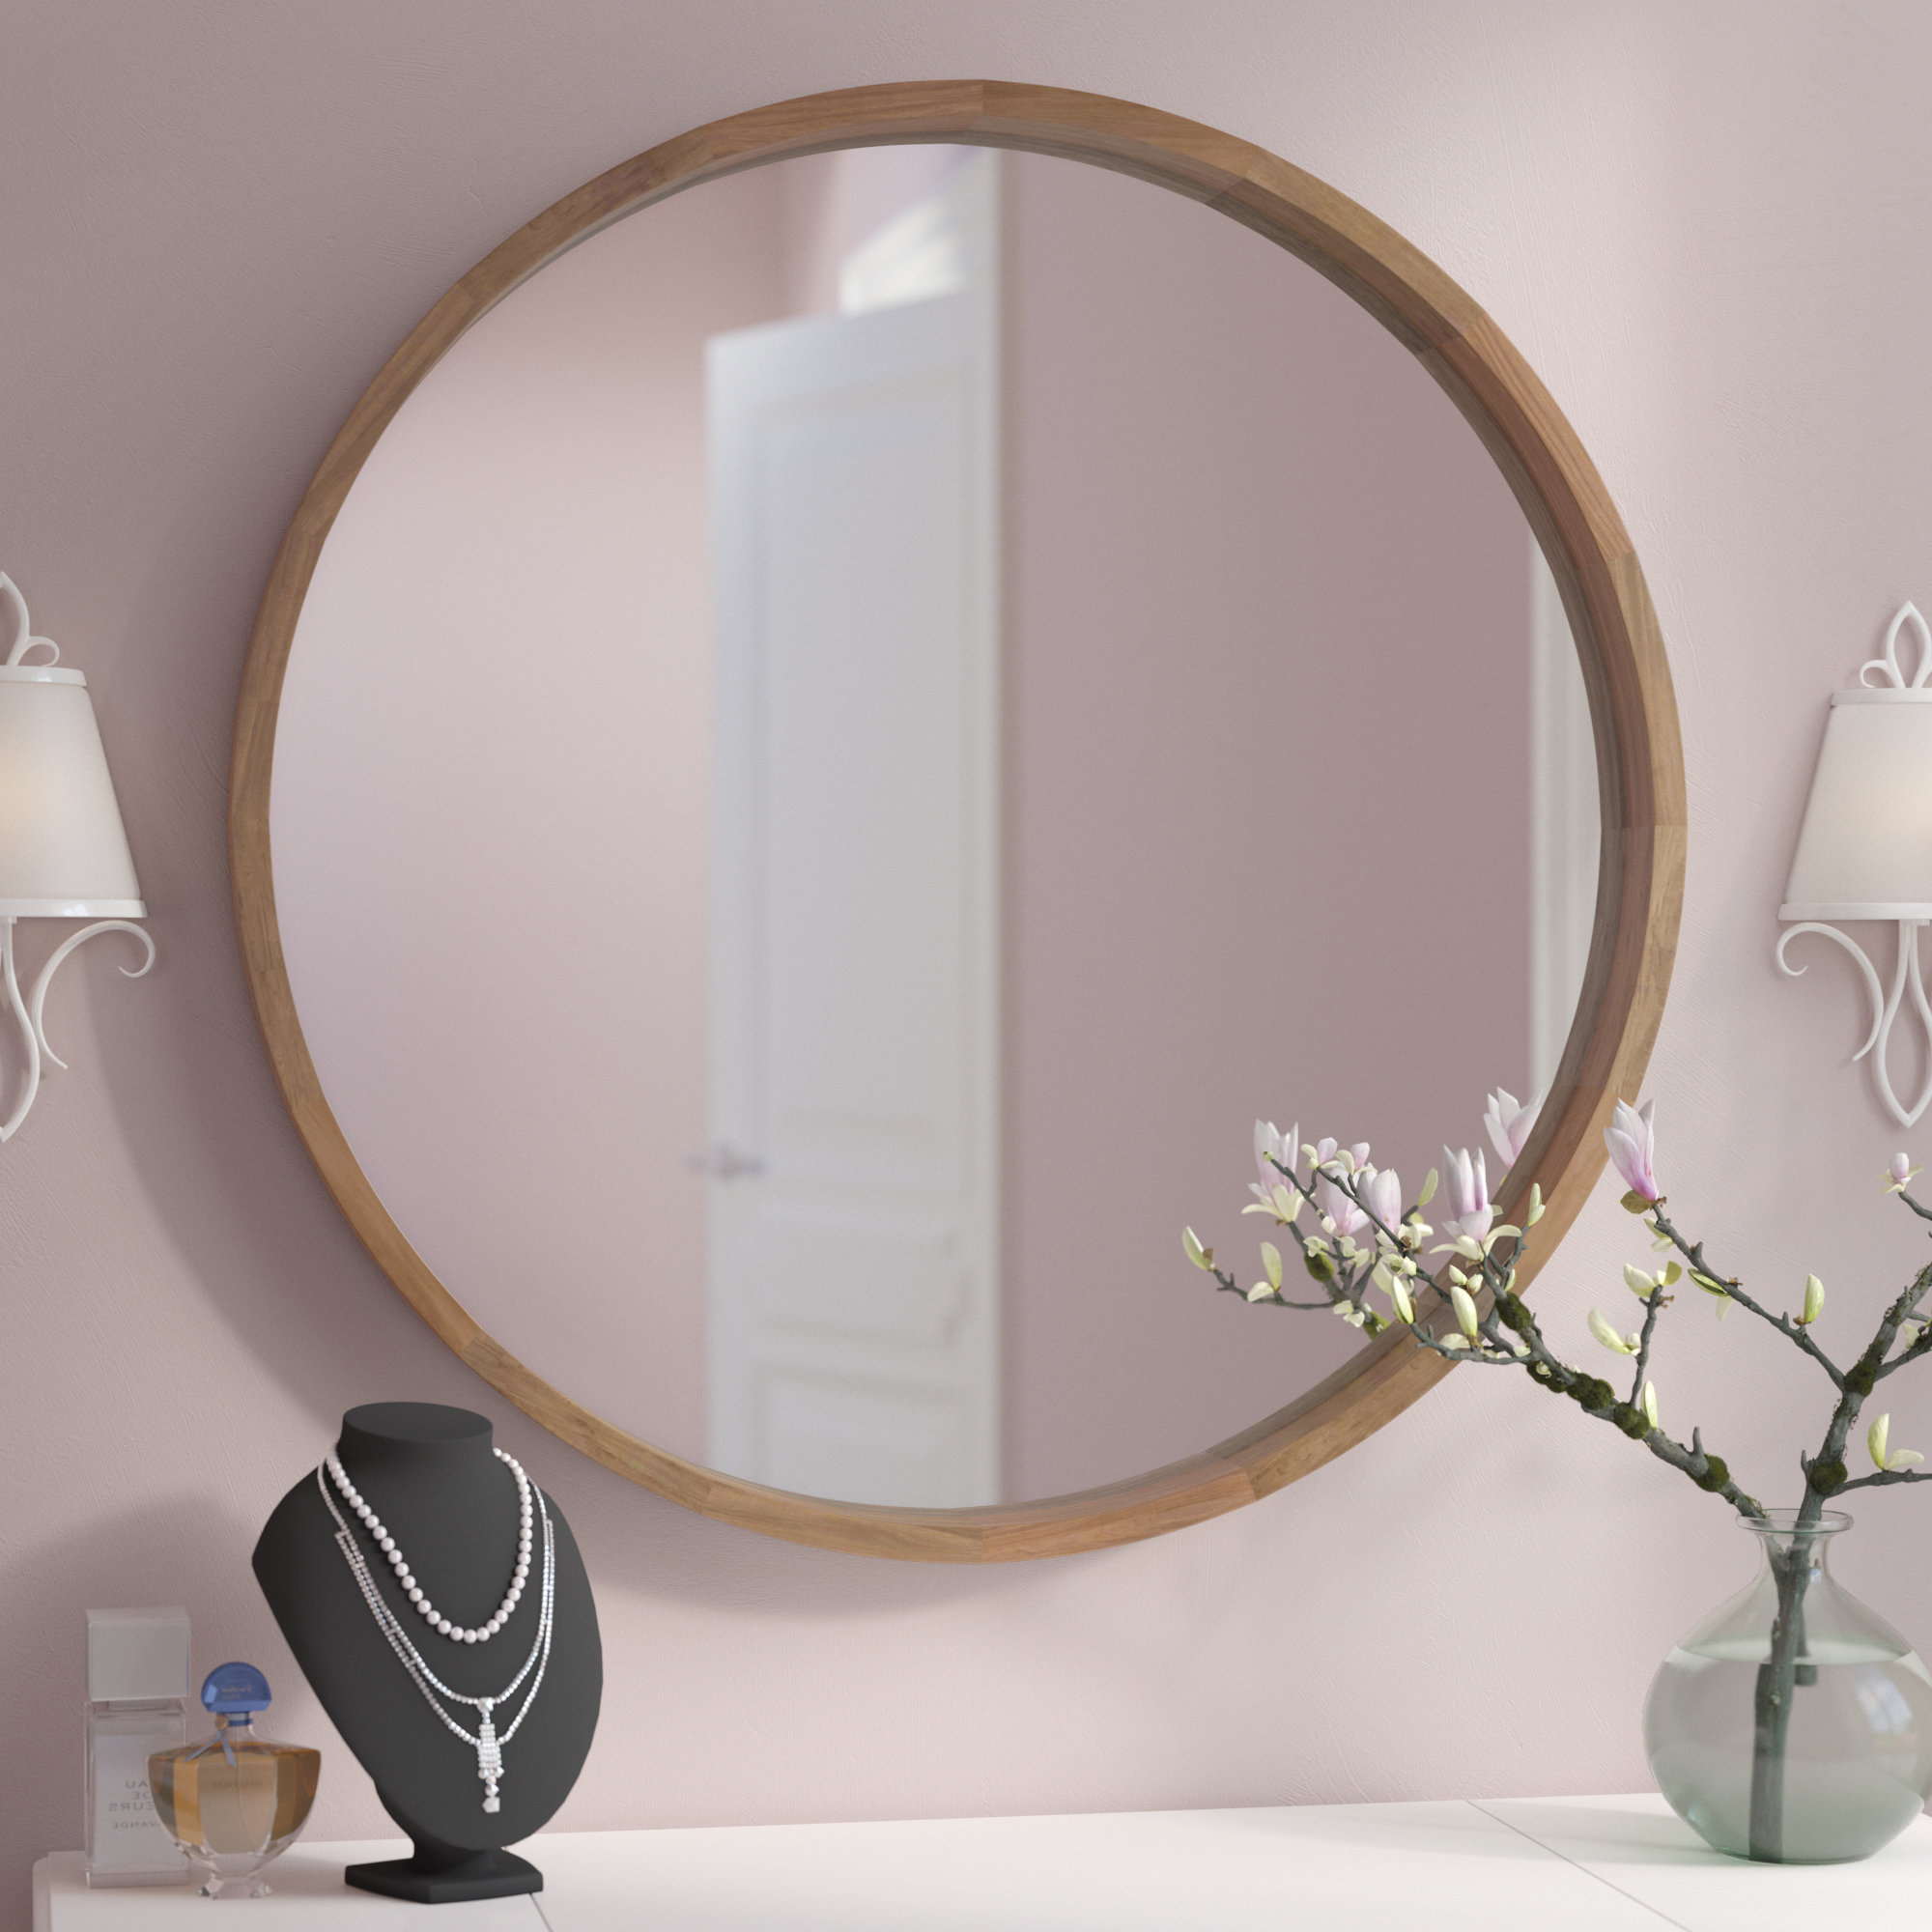 Kentwood Round Wall Mirrors Within Most Current Round Hanging Wall Mirror (Gallery 17 of 20)